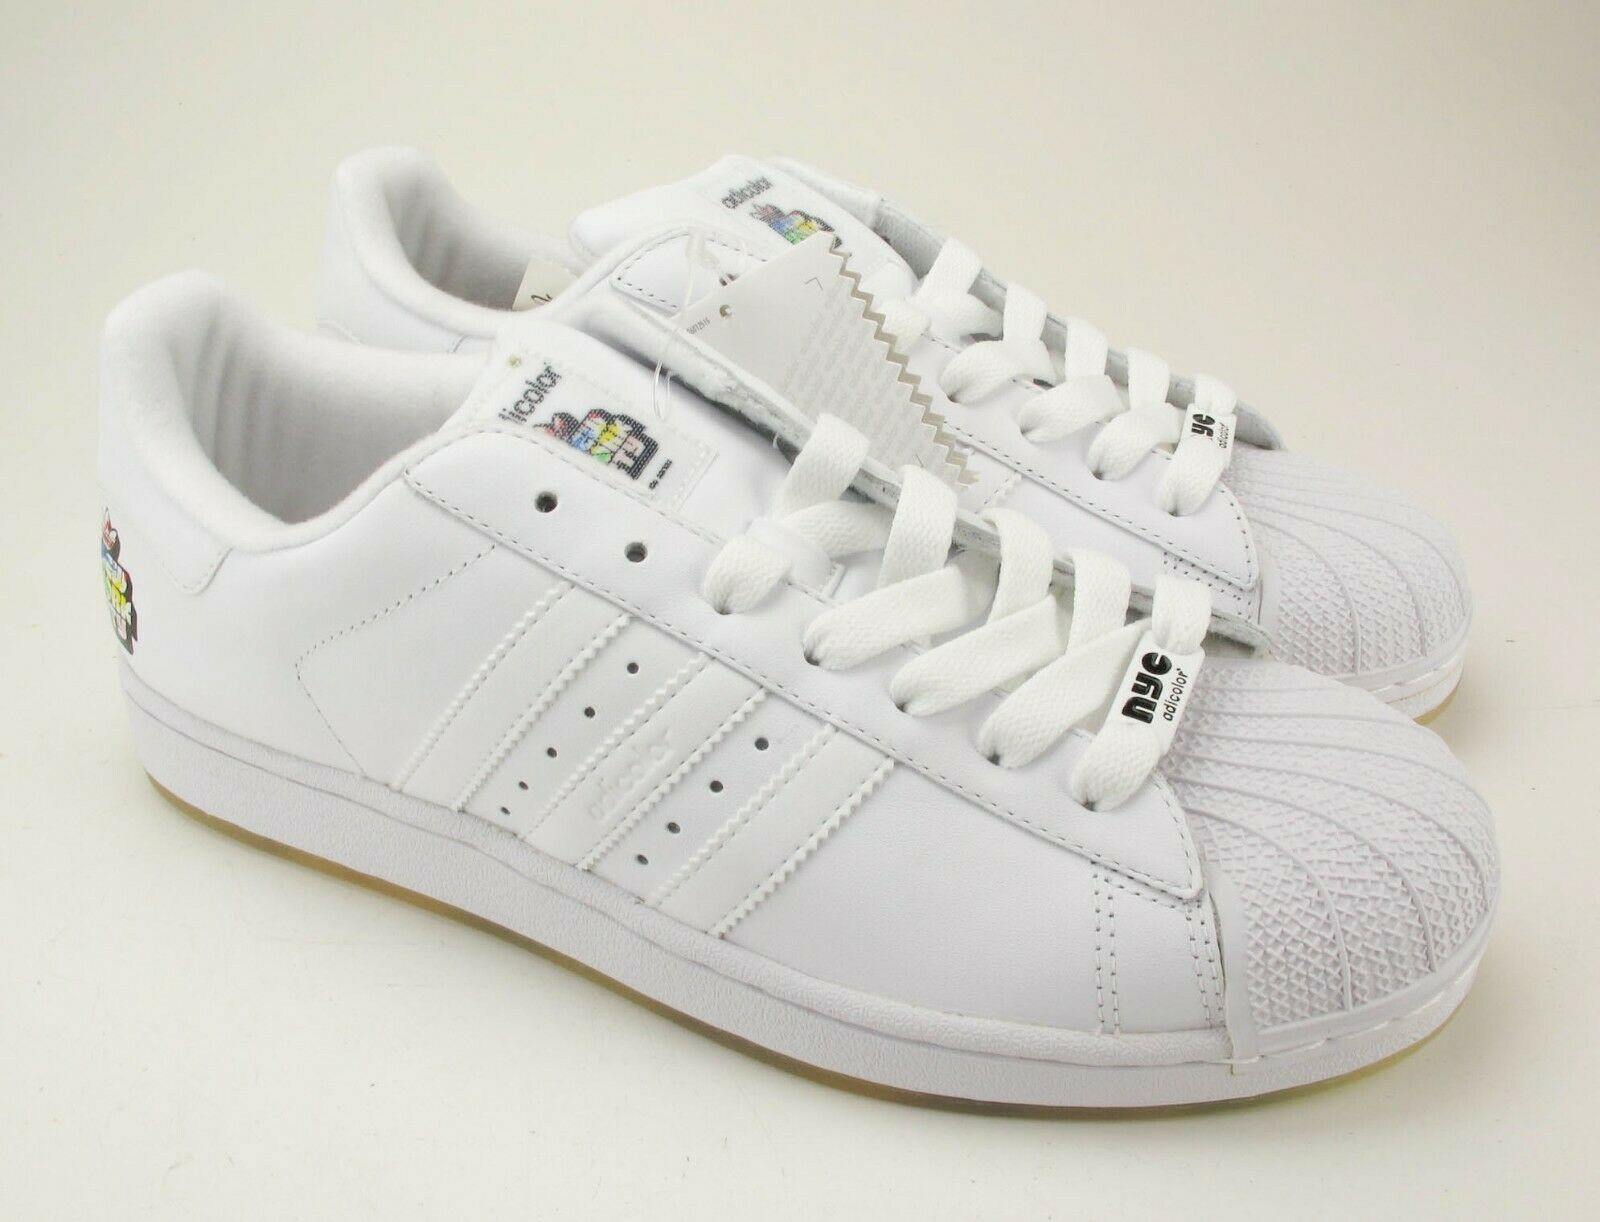 New Adidas Adicolor Limited Edition White W6 Superstar II ( 2 ) New York City 11